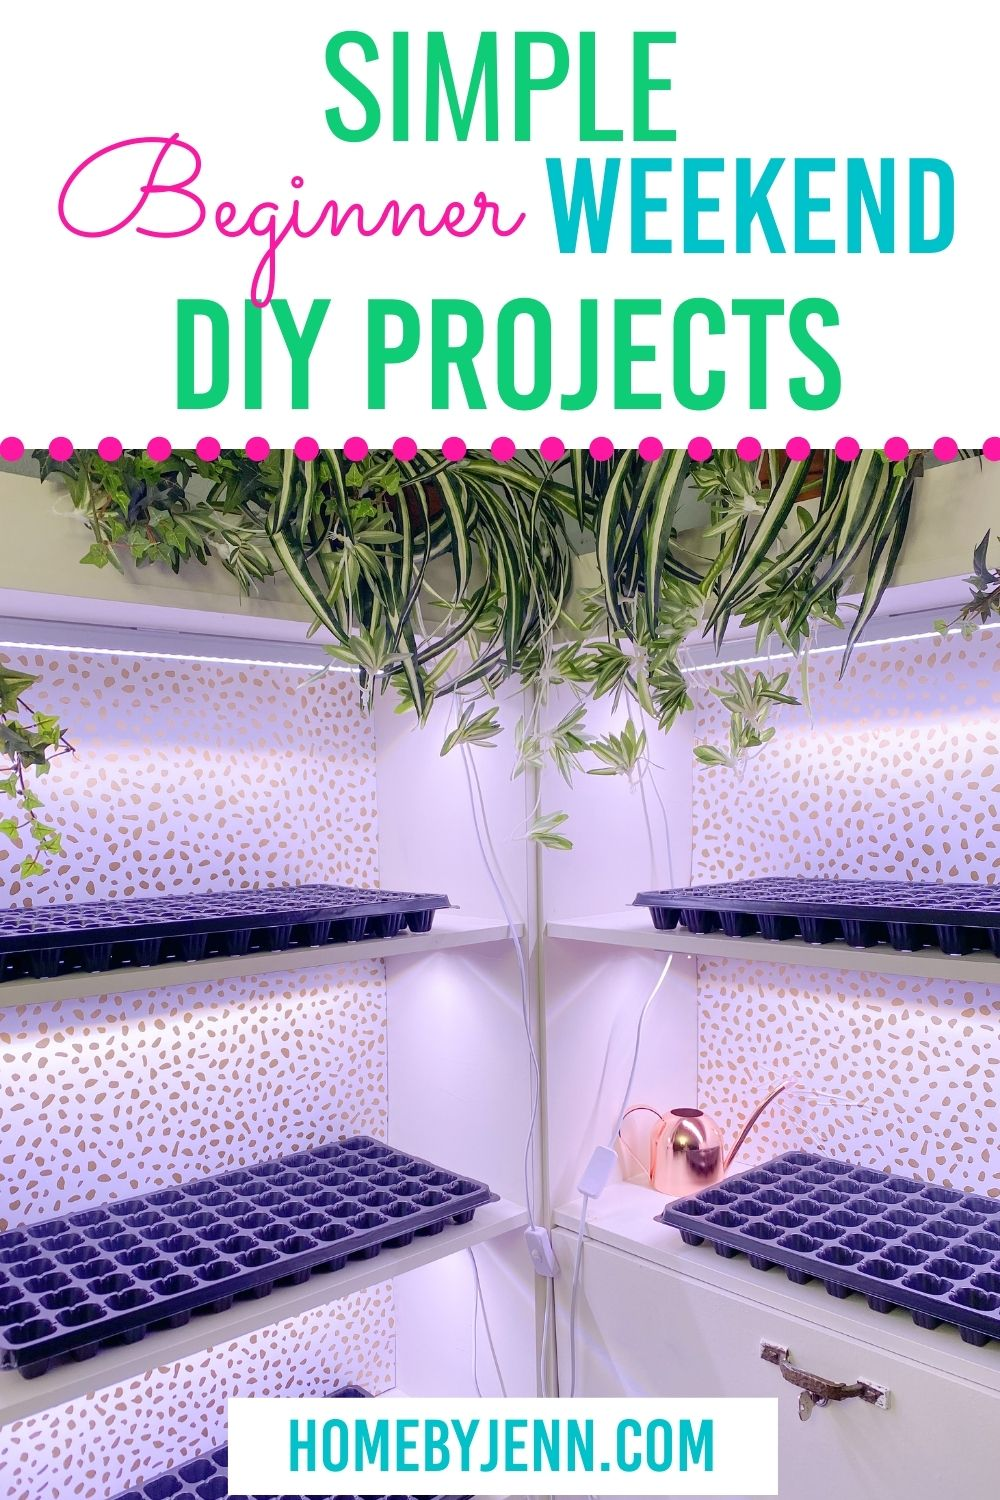 If you're wanting to update your home, build something new but don't have the time, you're in luck I'm sharing some simple Weekend DIY Projects. These all are beginner projects that take less than a weekend to put together. Only a few common supplies are needed for these Easy Weekend DIY Projects. via @homebyjenn